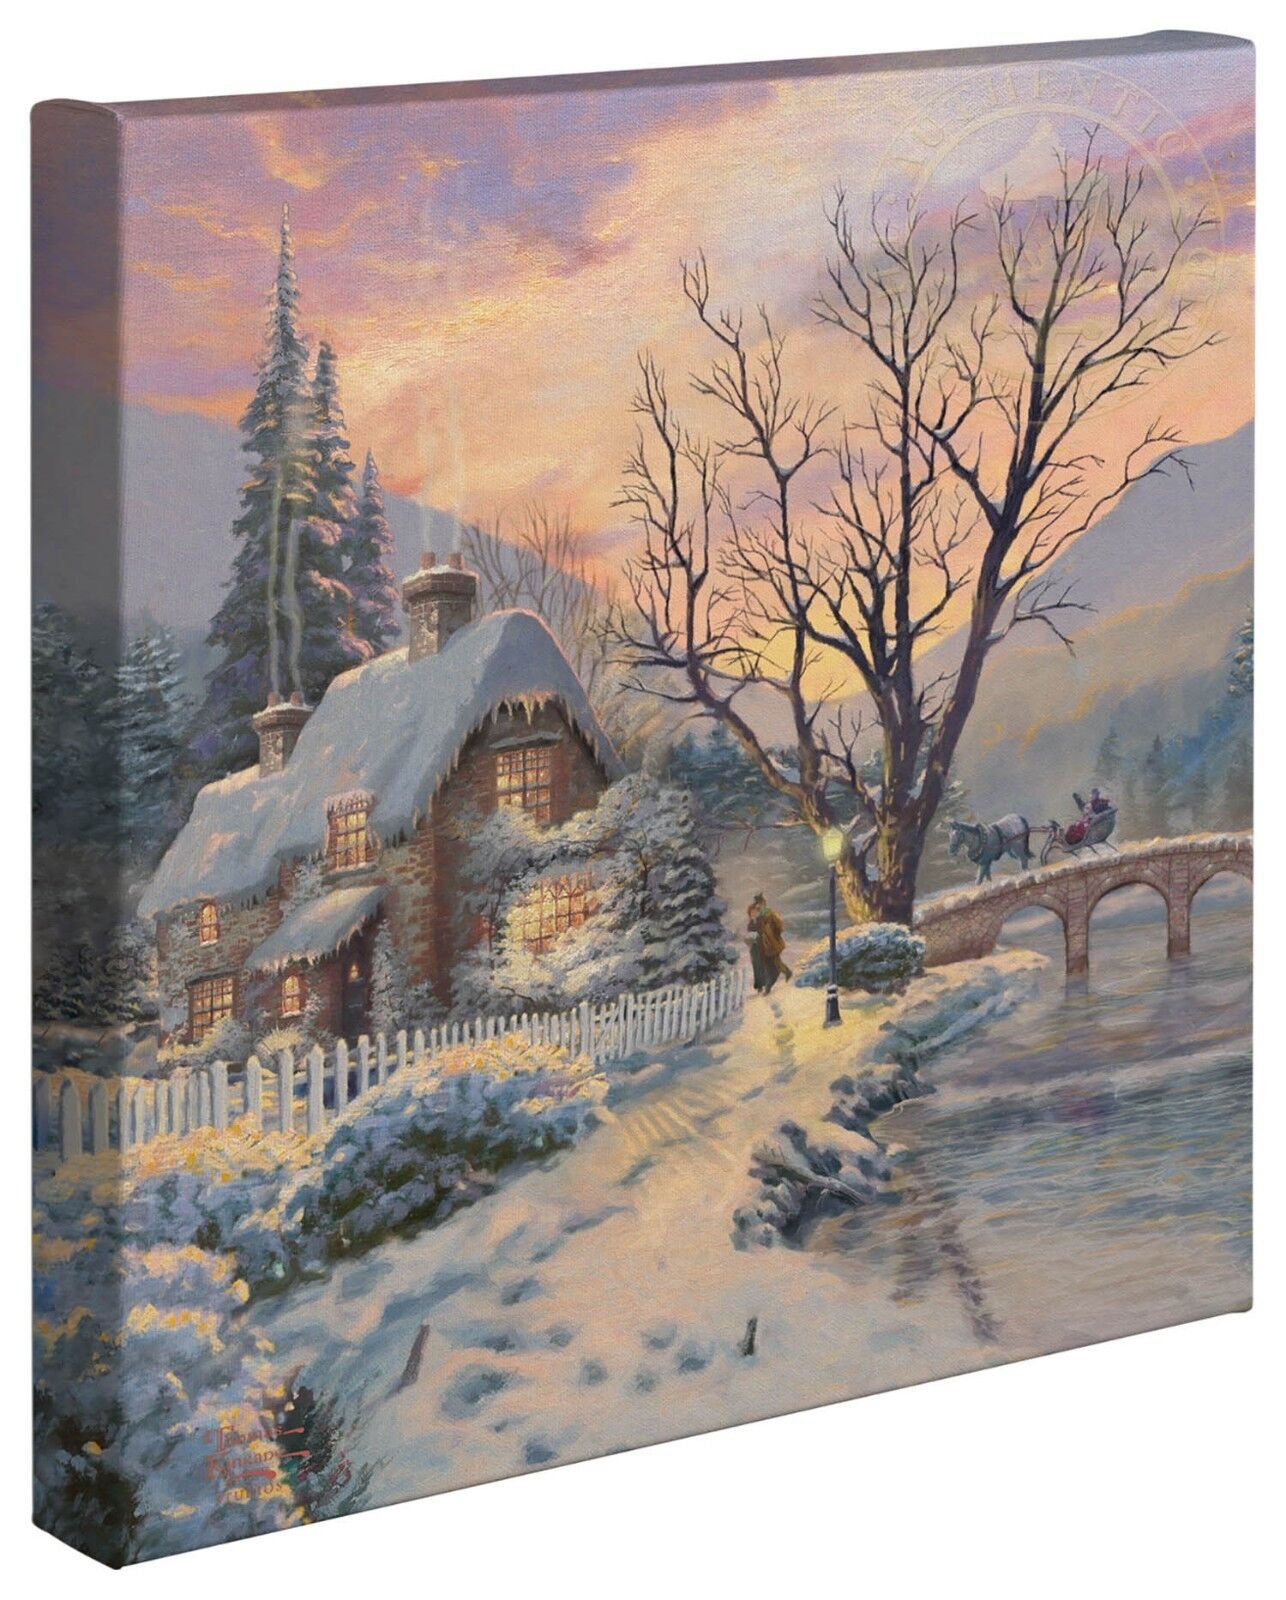 Thomas Kinkade Holiday Collection 14 x 14 Gallery Wrapped Canvas (Choice of 4)